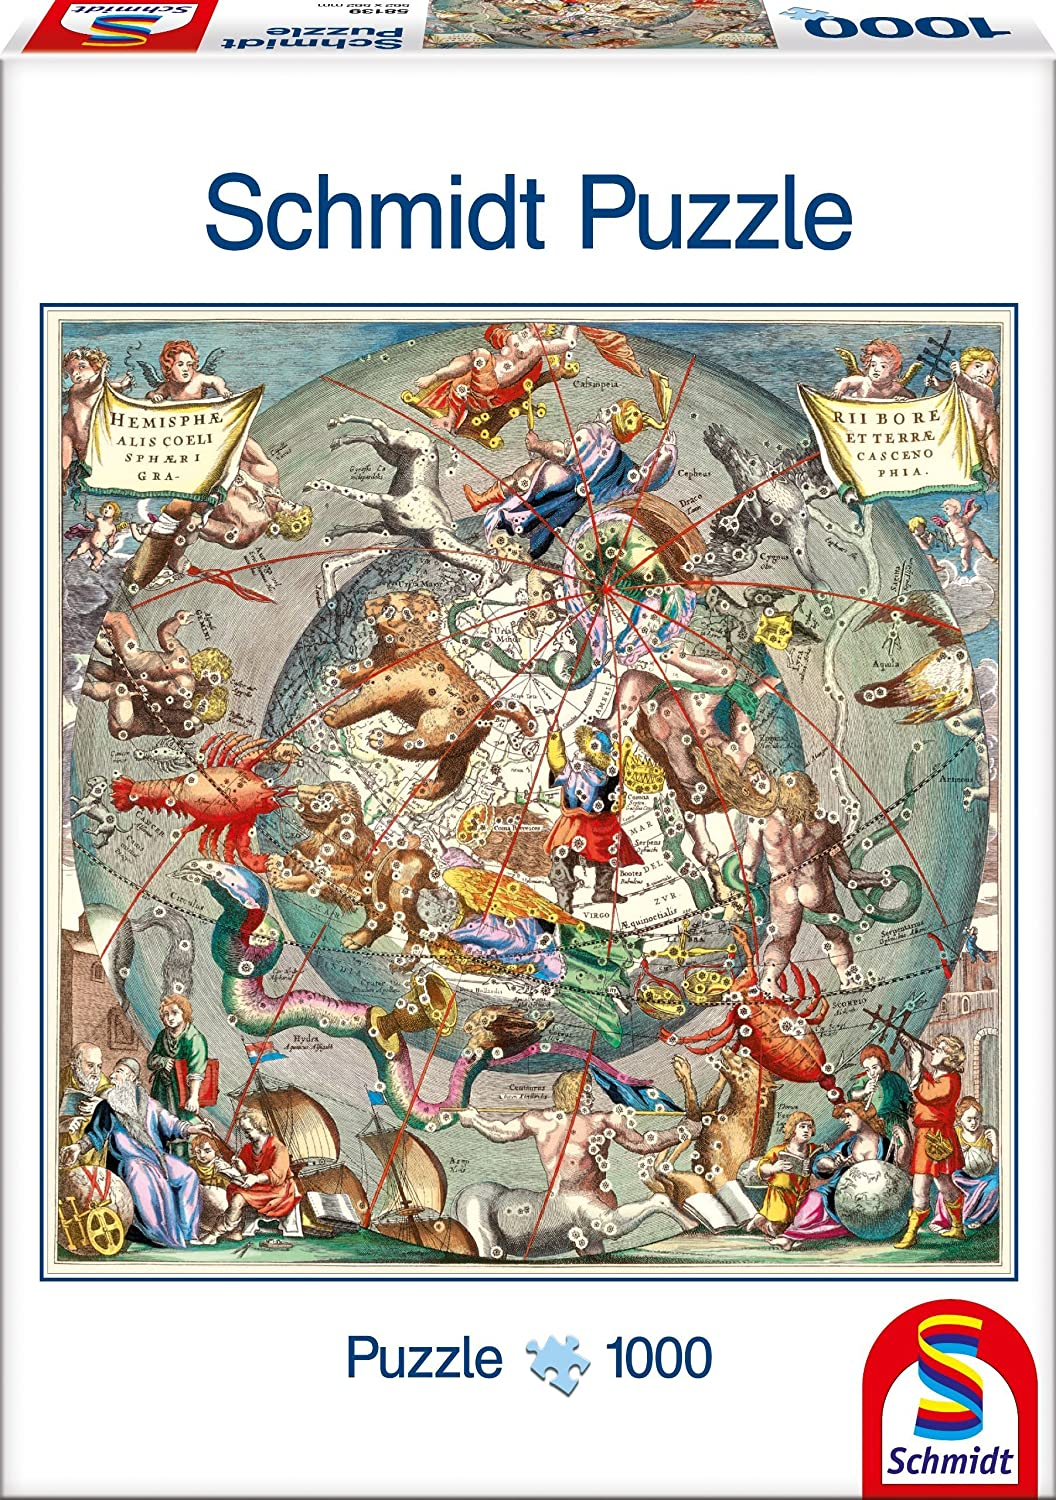 Schmidt ancient astrological map adult jigsaw puzzle 1000 pieces schmidt ancient astrological map adult jigsaw puzzle 1000 pieces amazon toys games gumiabroncs